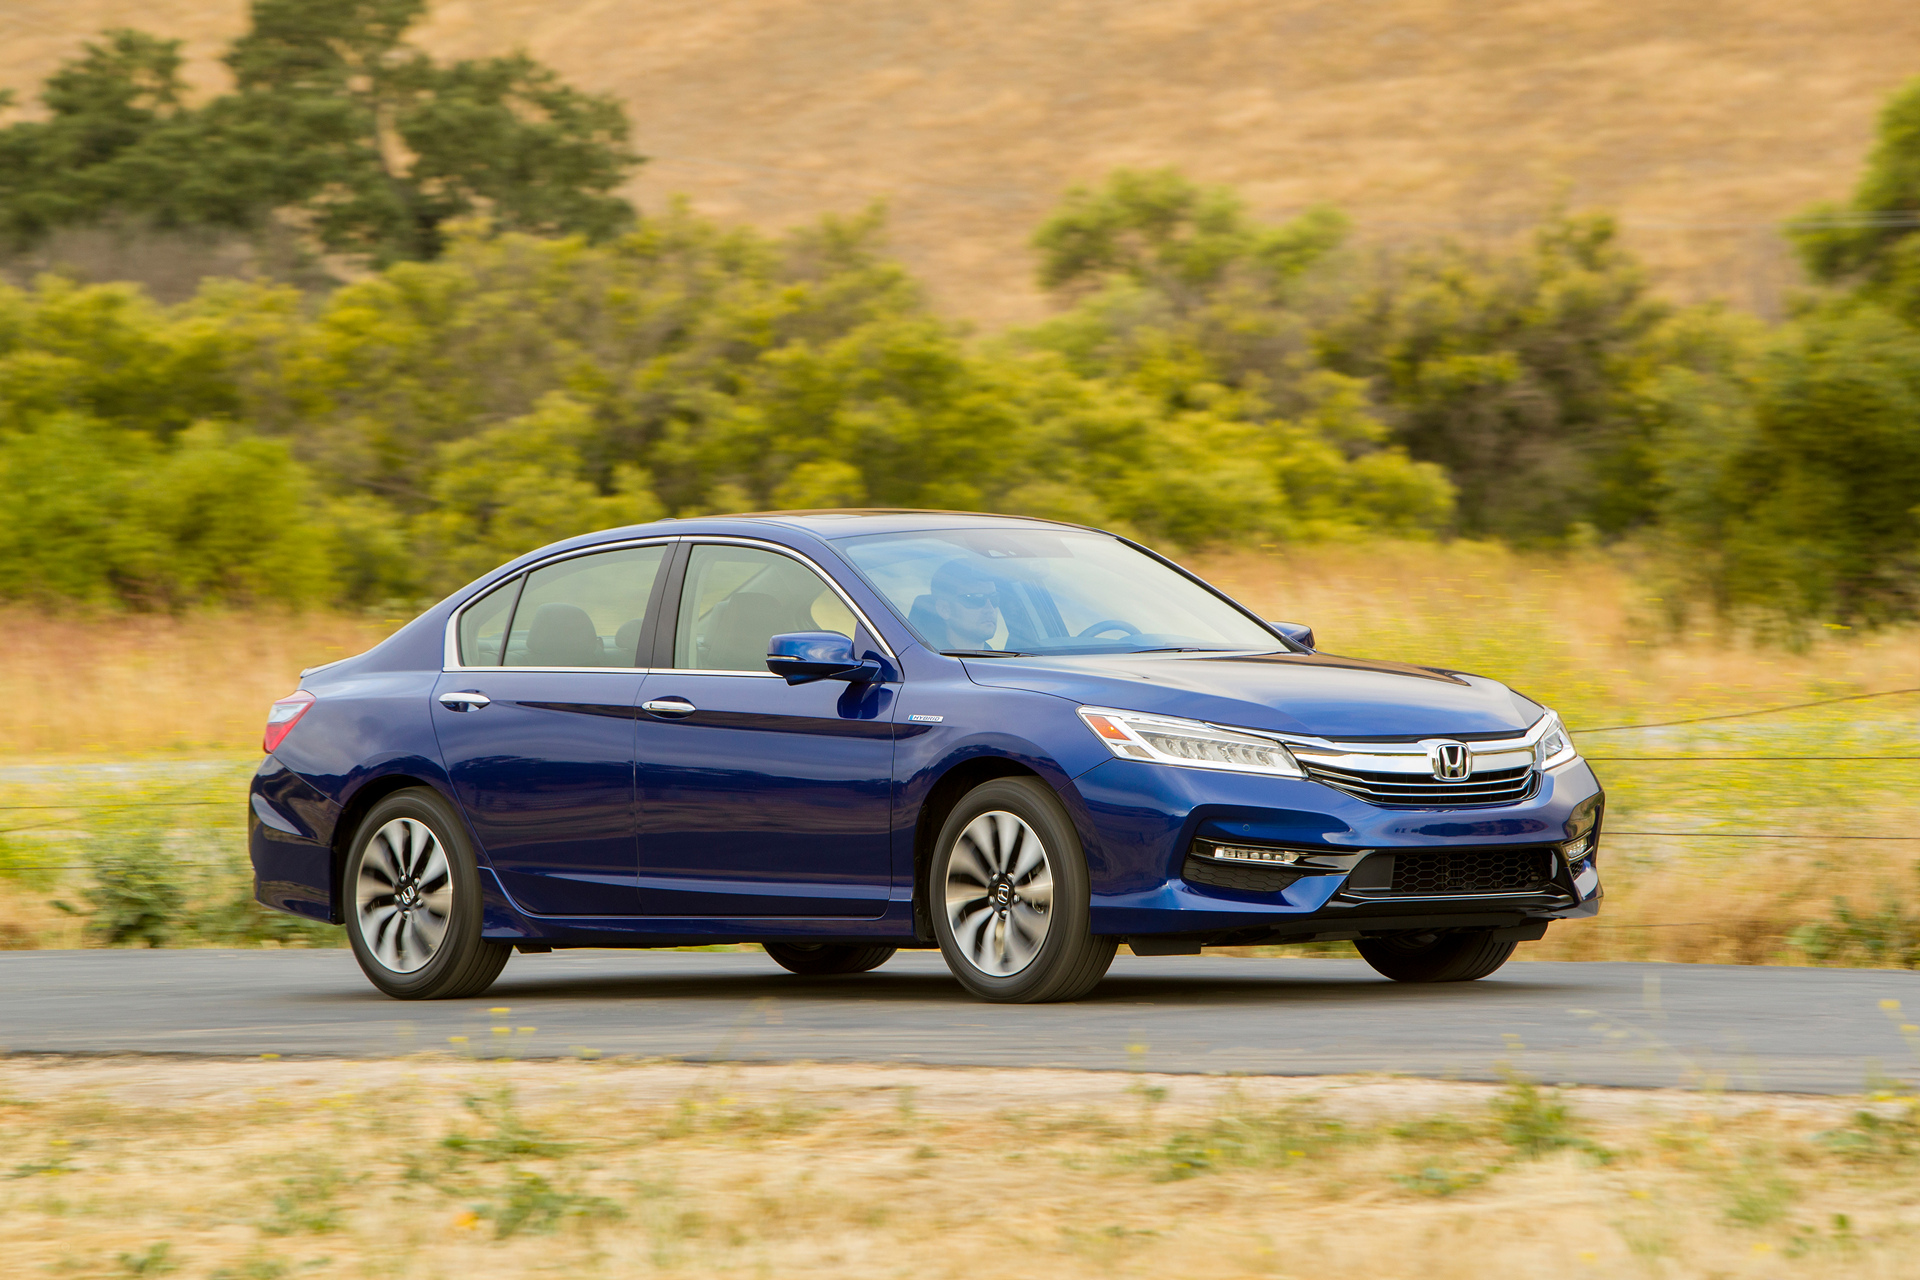 2017 Honda Accord Hybrid © Honda Motor Co., Ltd.